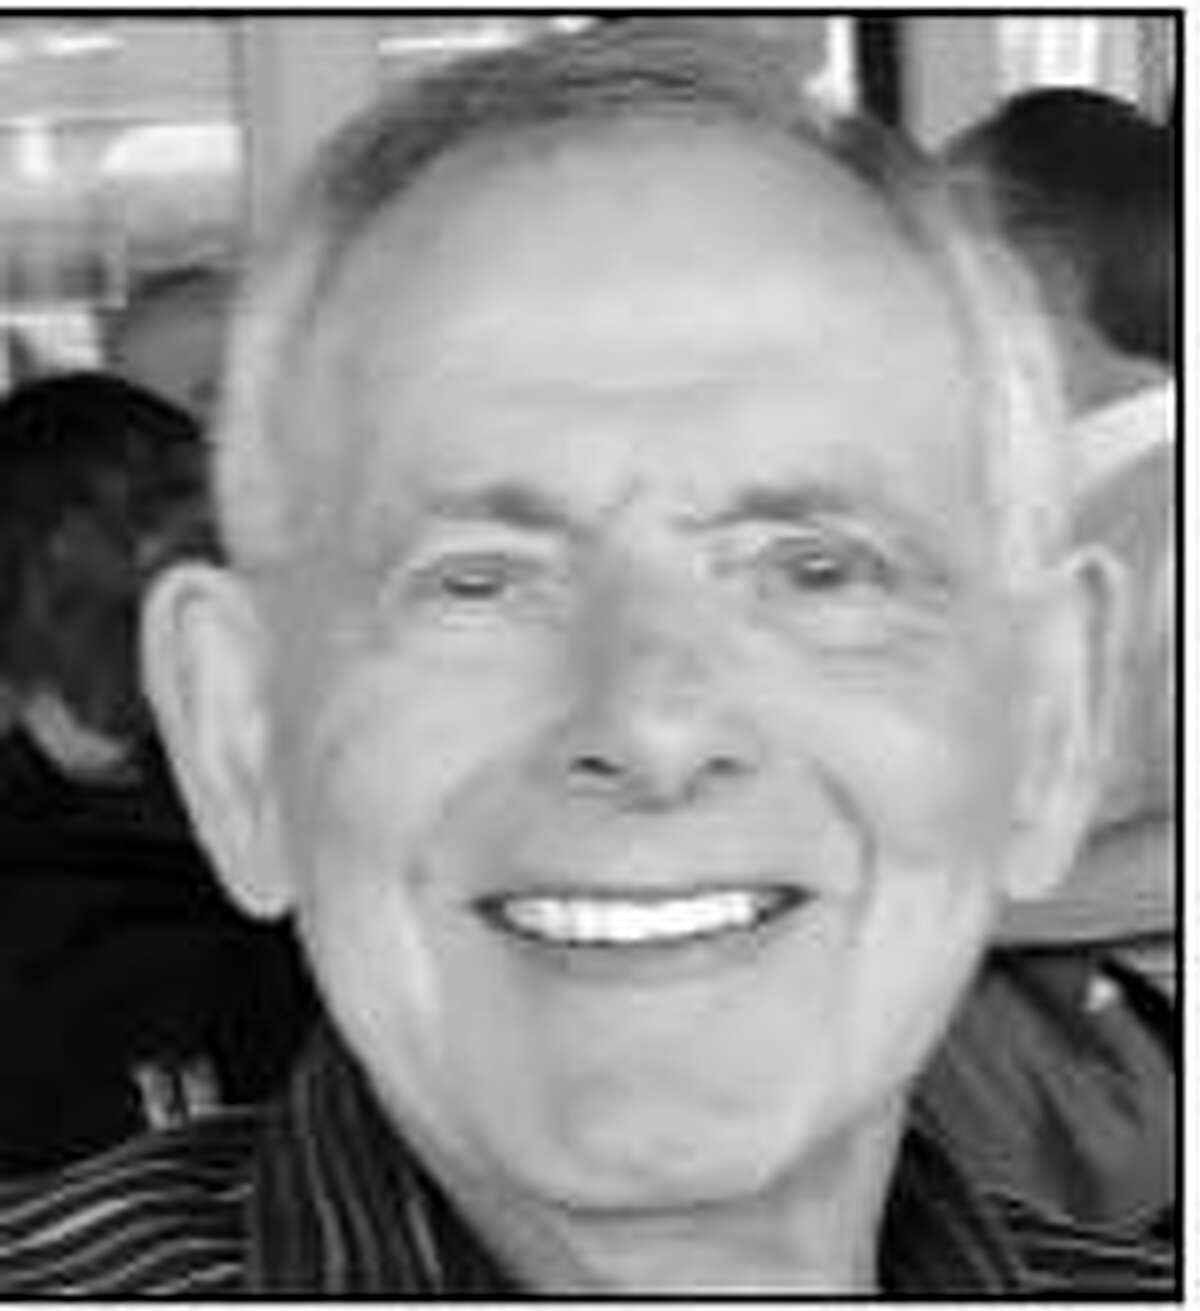 Marvin Gelfand died on March 24 at Bridgeport Hospital after contracting coronavirus.